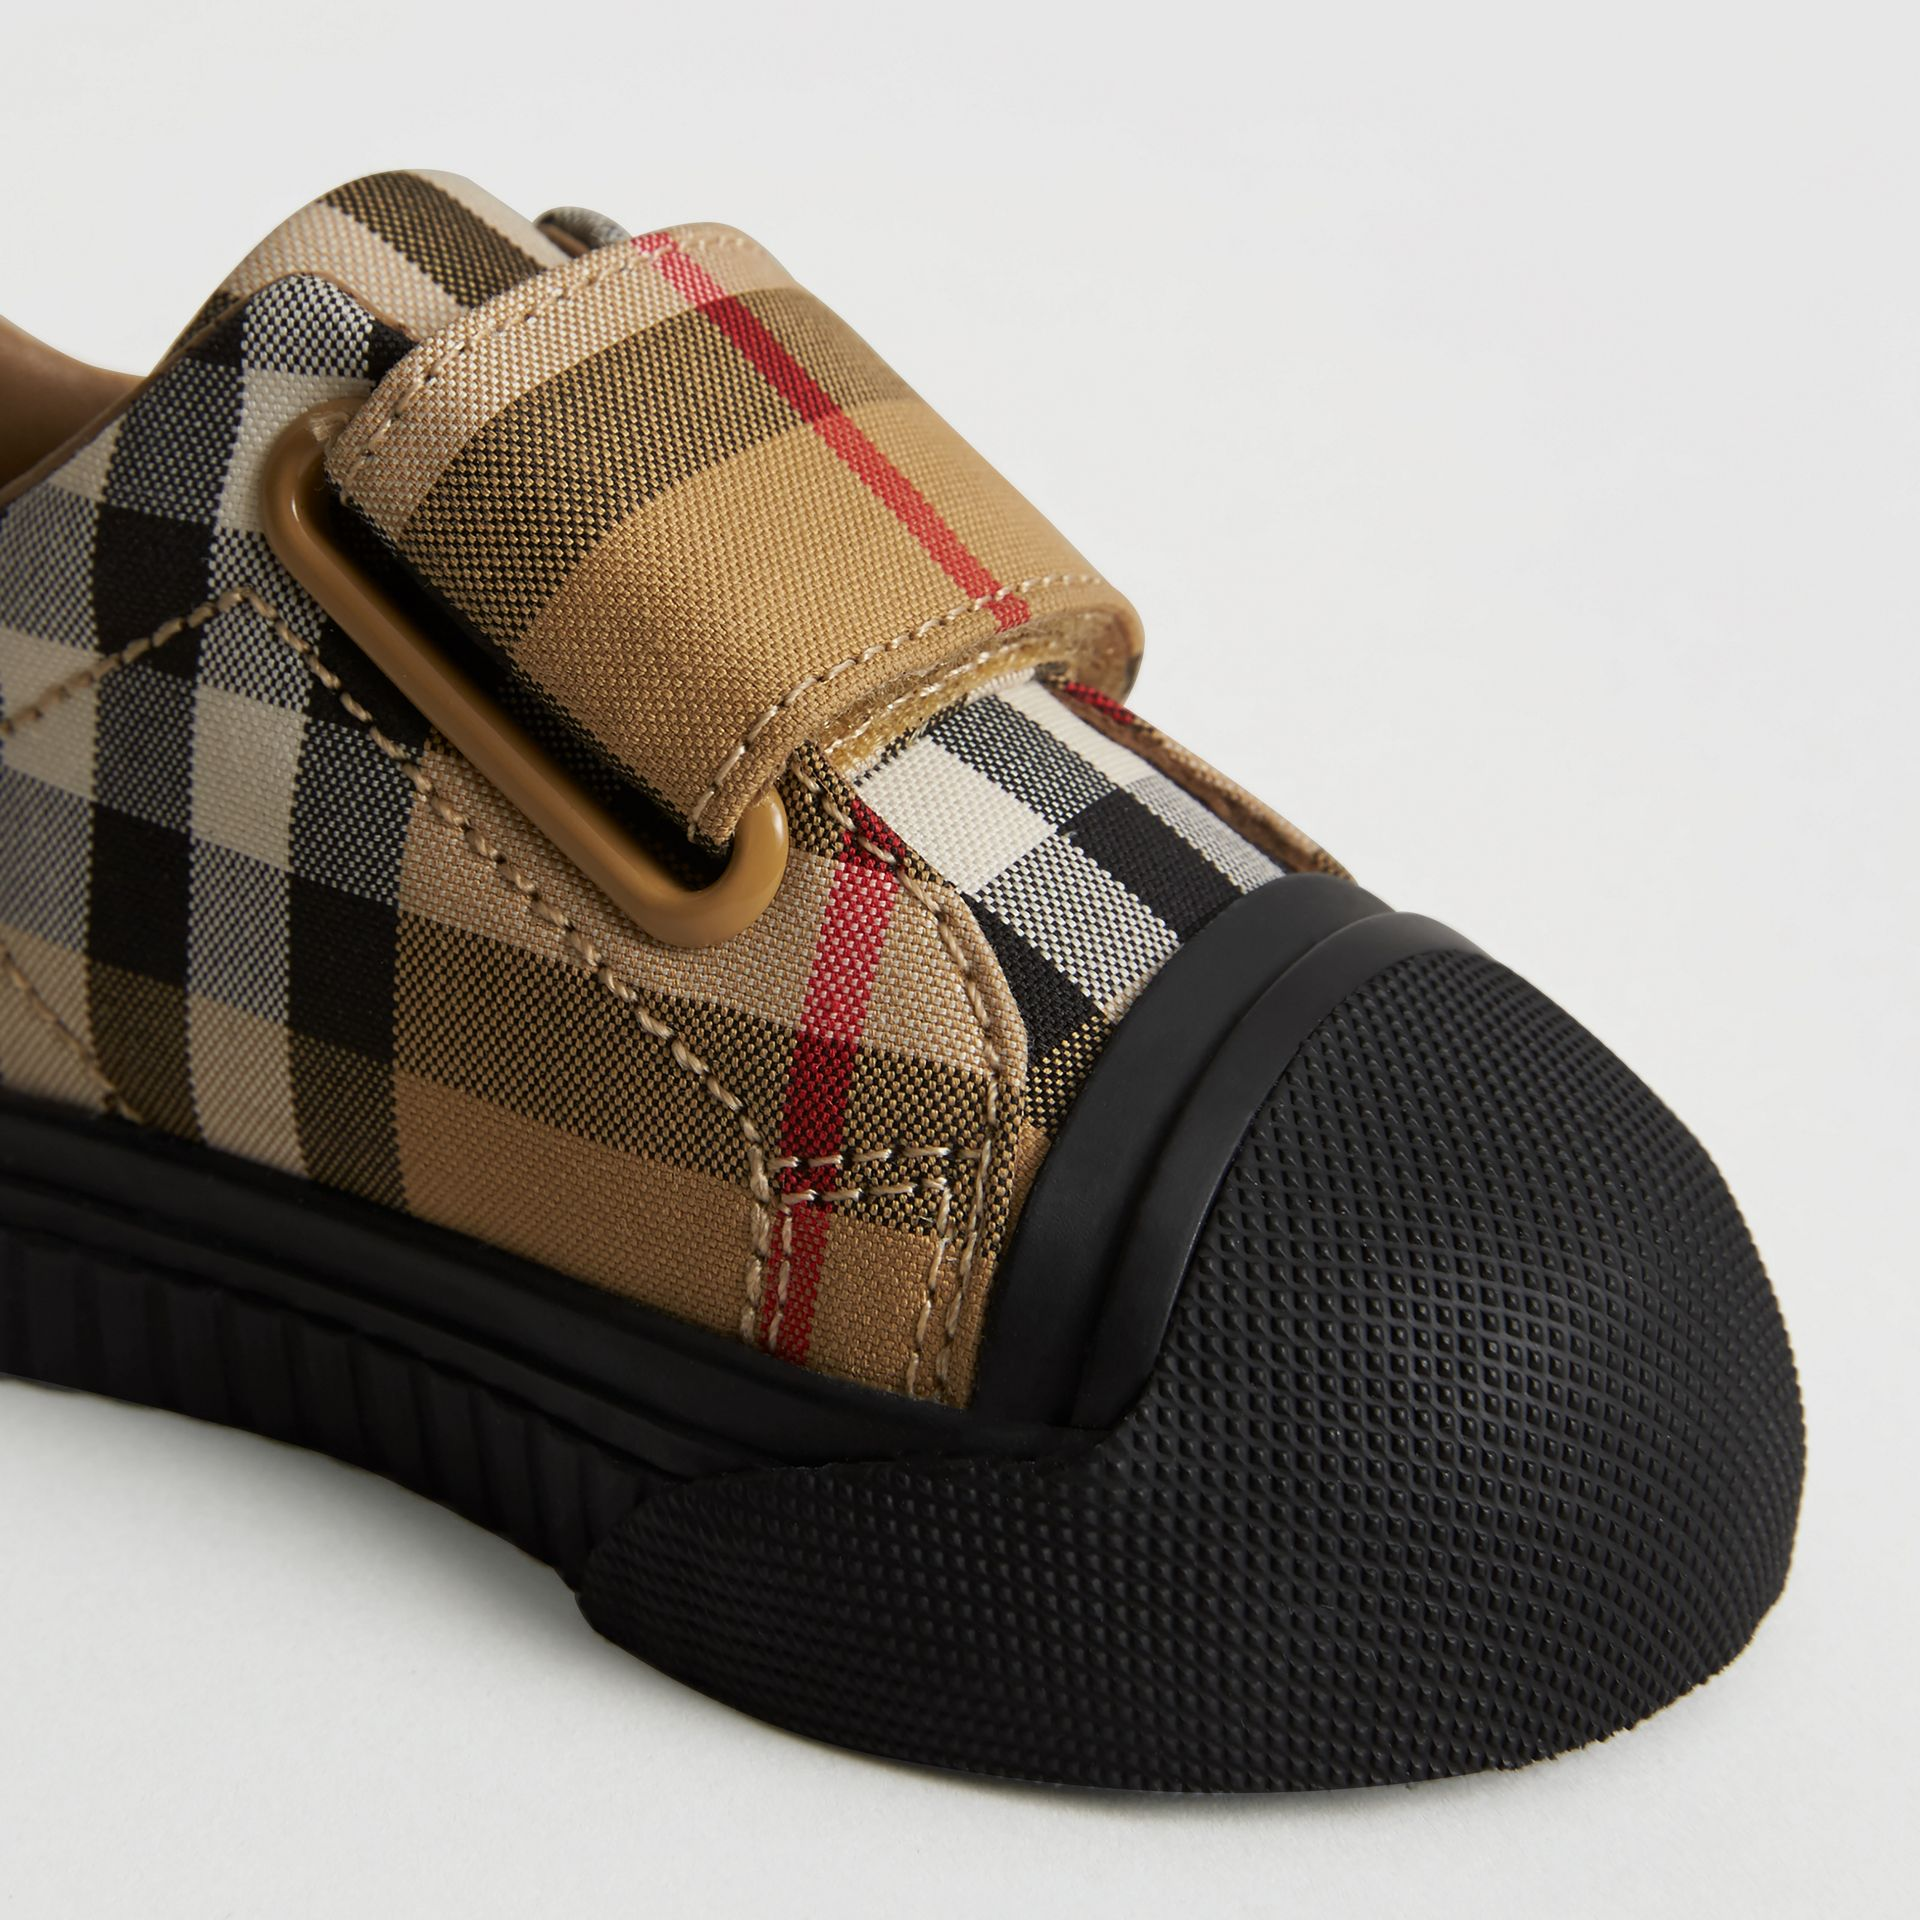 Sneakers en cuir à motif Vintage check (Jaune Antique/noir) - Enfant | Burberry - photo de la galerie 1